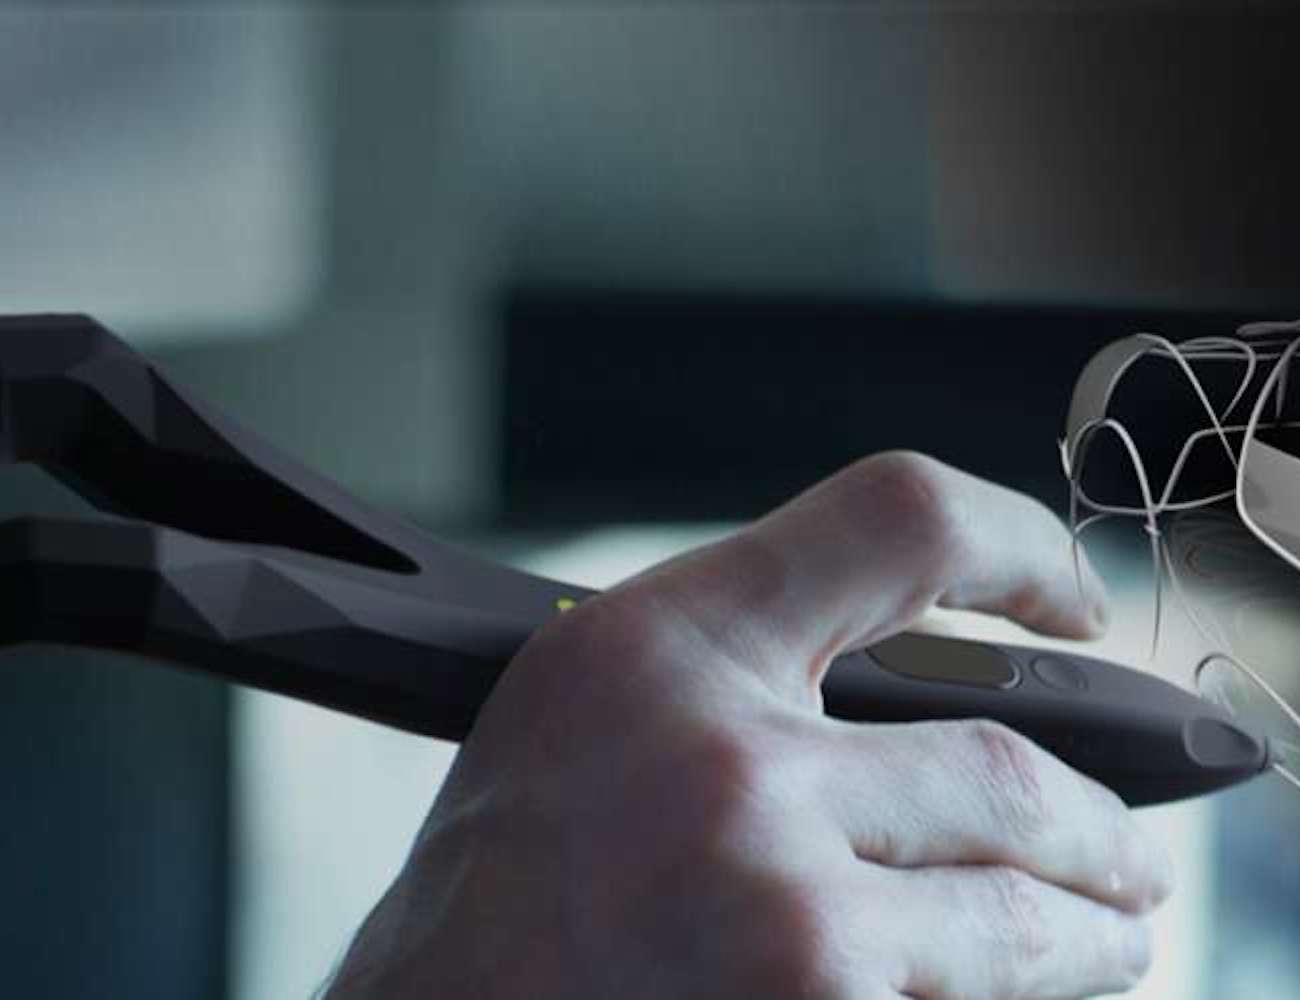 Logitech VR Ink Pilot Edition Stylus lets you be three-dimensionally creative